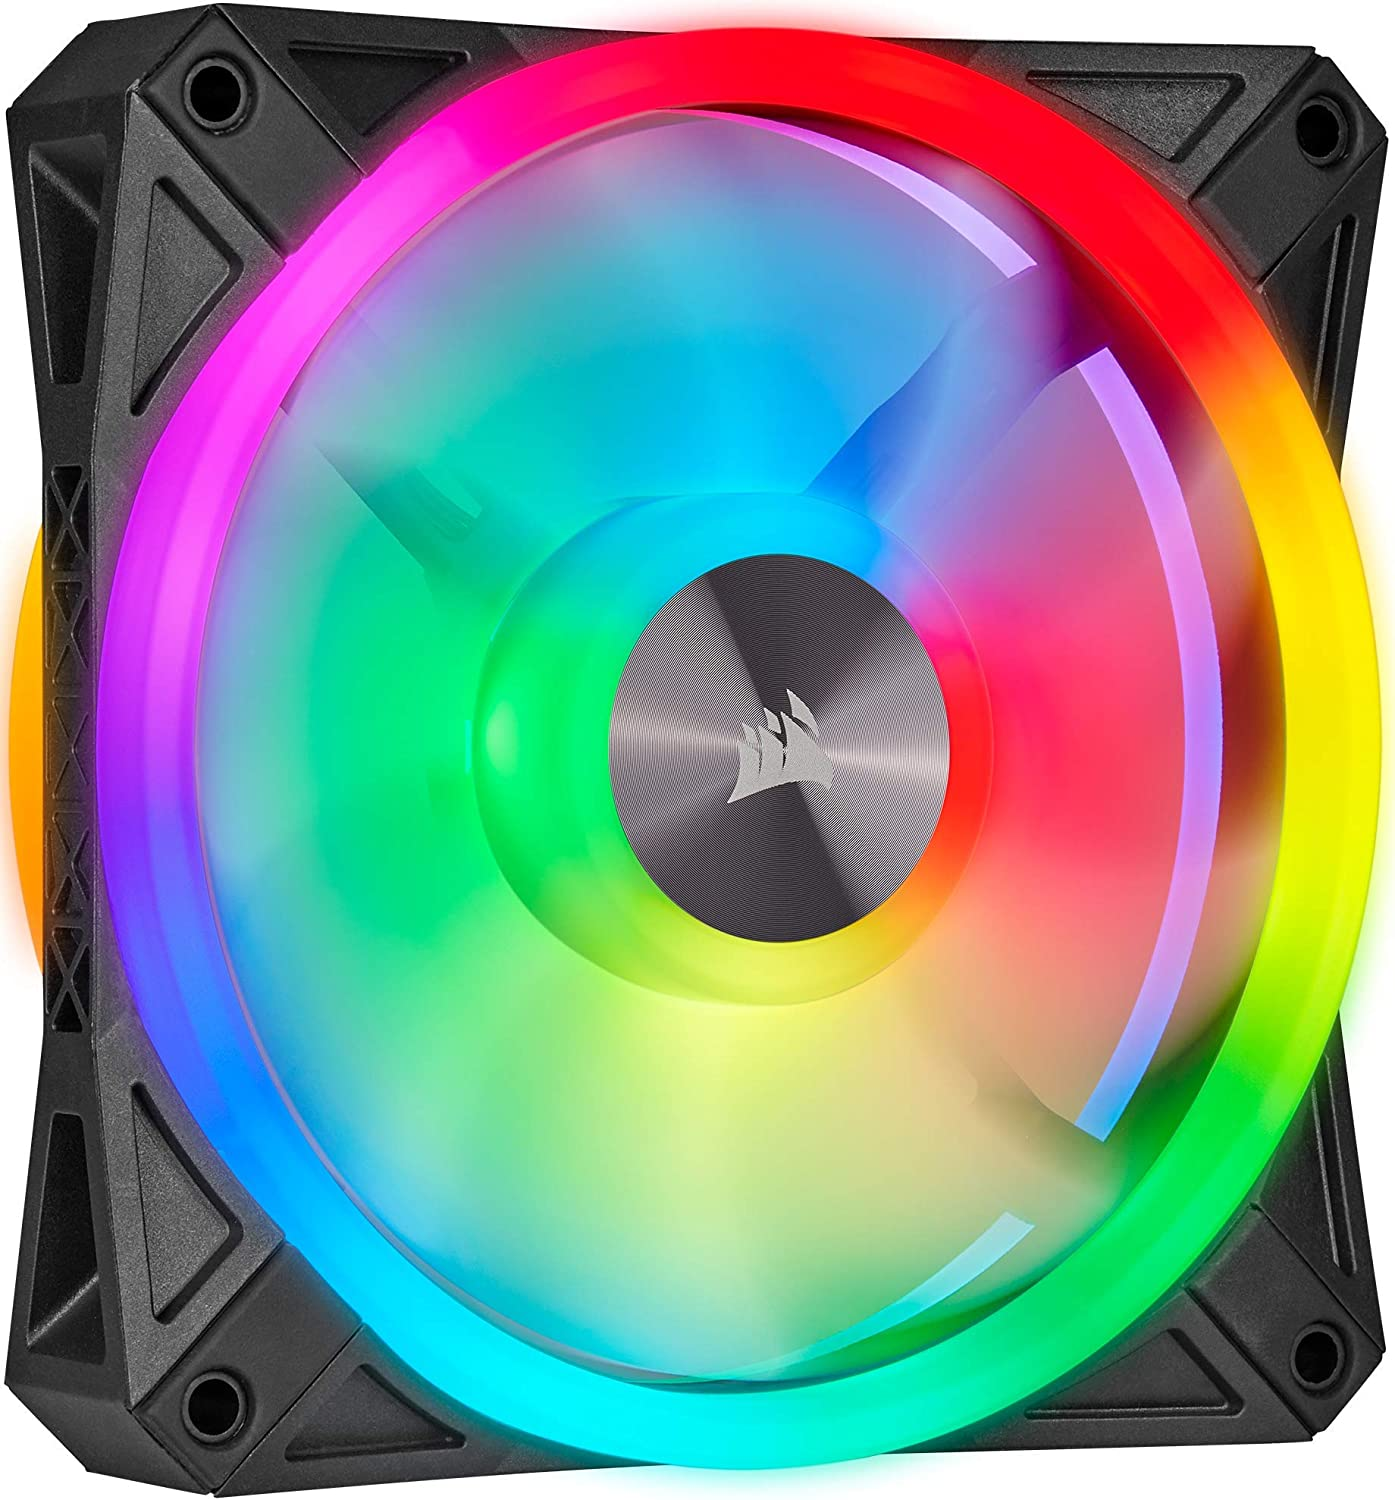 Corsair Icue Rgb Led Pwm Cooling Fan Computers Accessories